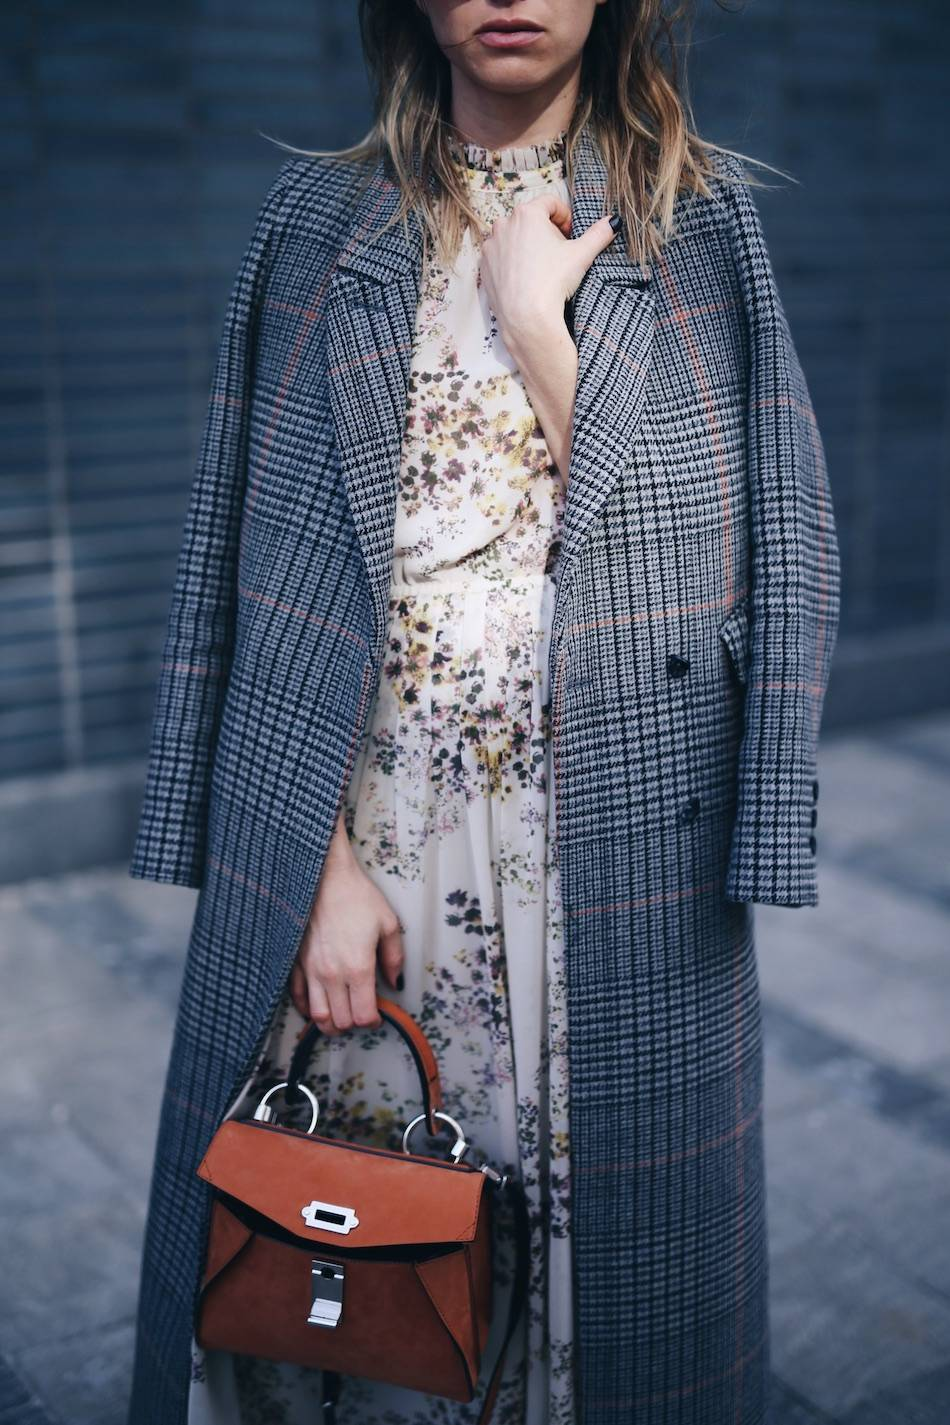 Style and beauty blogger Jill Lansky of The August Diaries on how to layer stylishly in plaid maxi coat, floral dress, Proenza Schouler hava bag